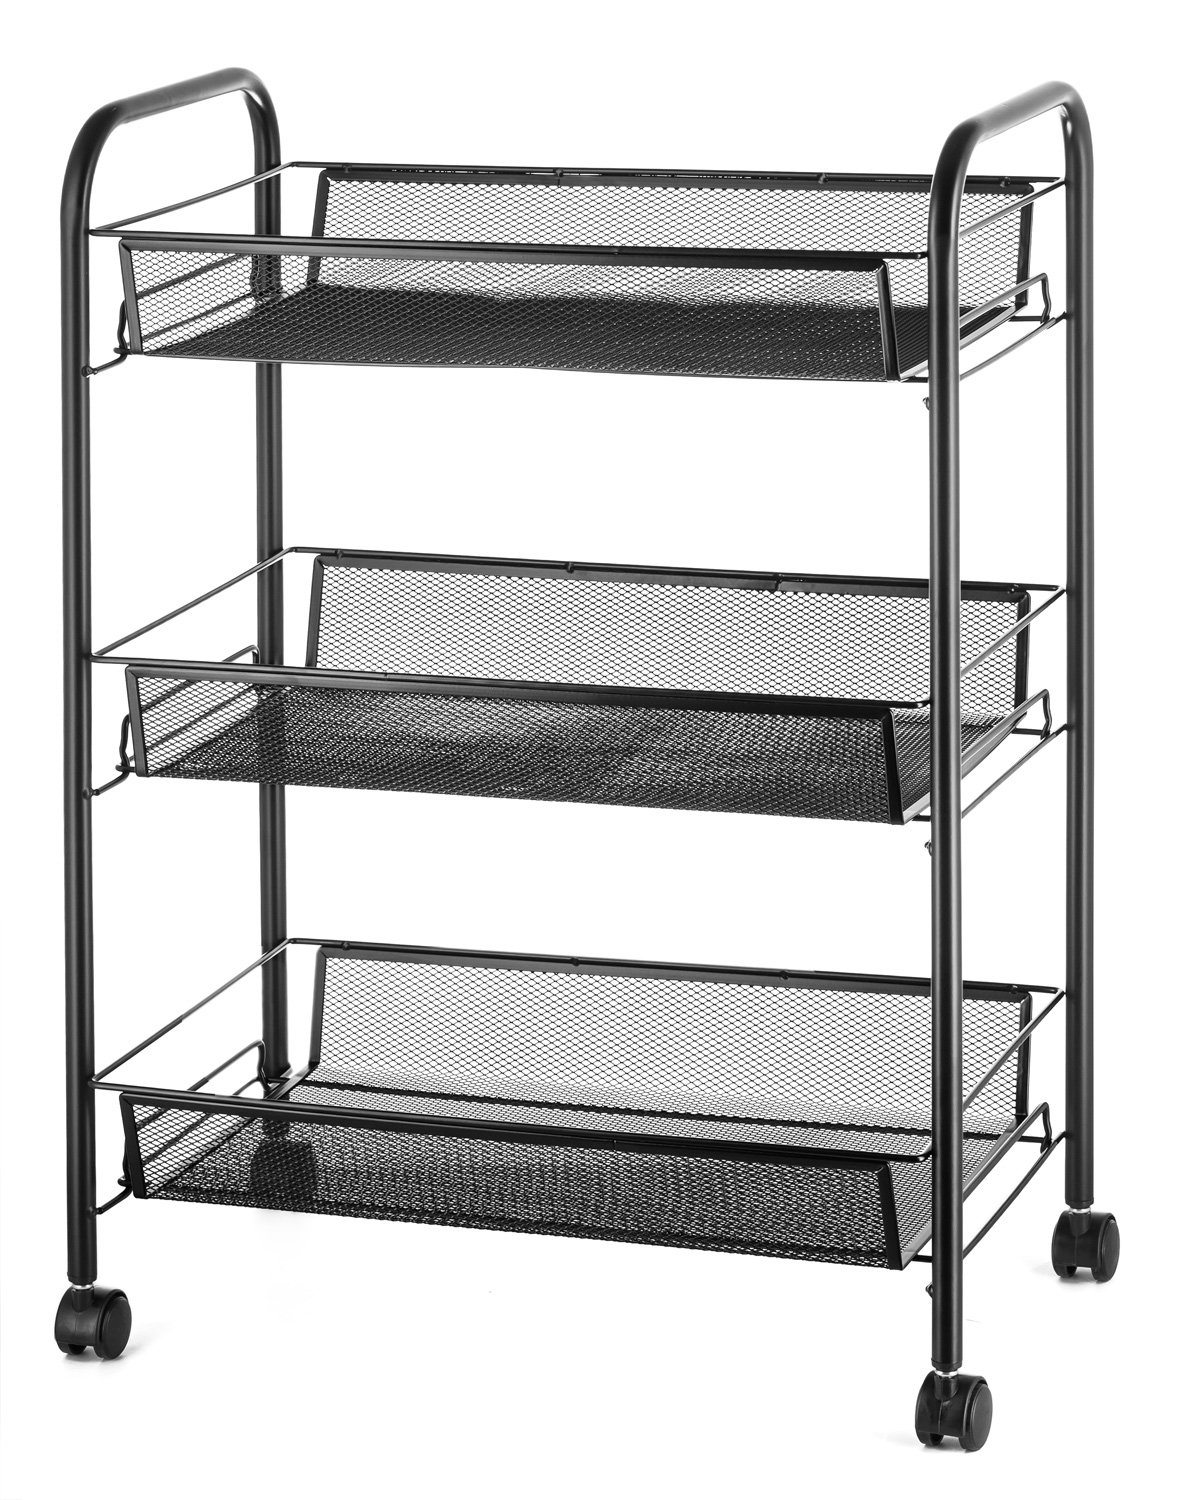 "Halter 3-Tier Rolling Basket Stand, Full Metal Rolling Trolley for Kitchen & Bathroom - Three Tier Storage Cart w/Shelves & Wheels - 24.75"" X 17.25"" - Black"